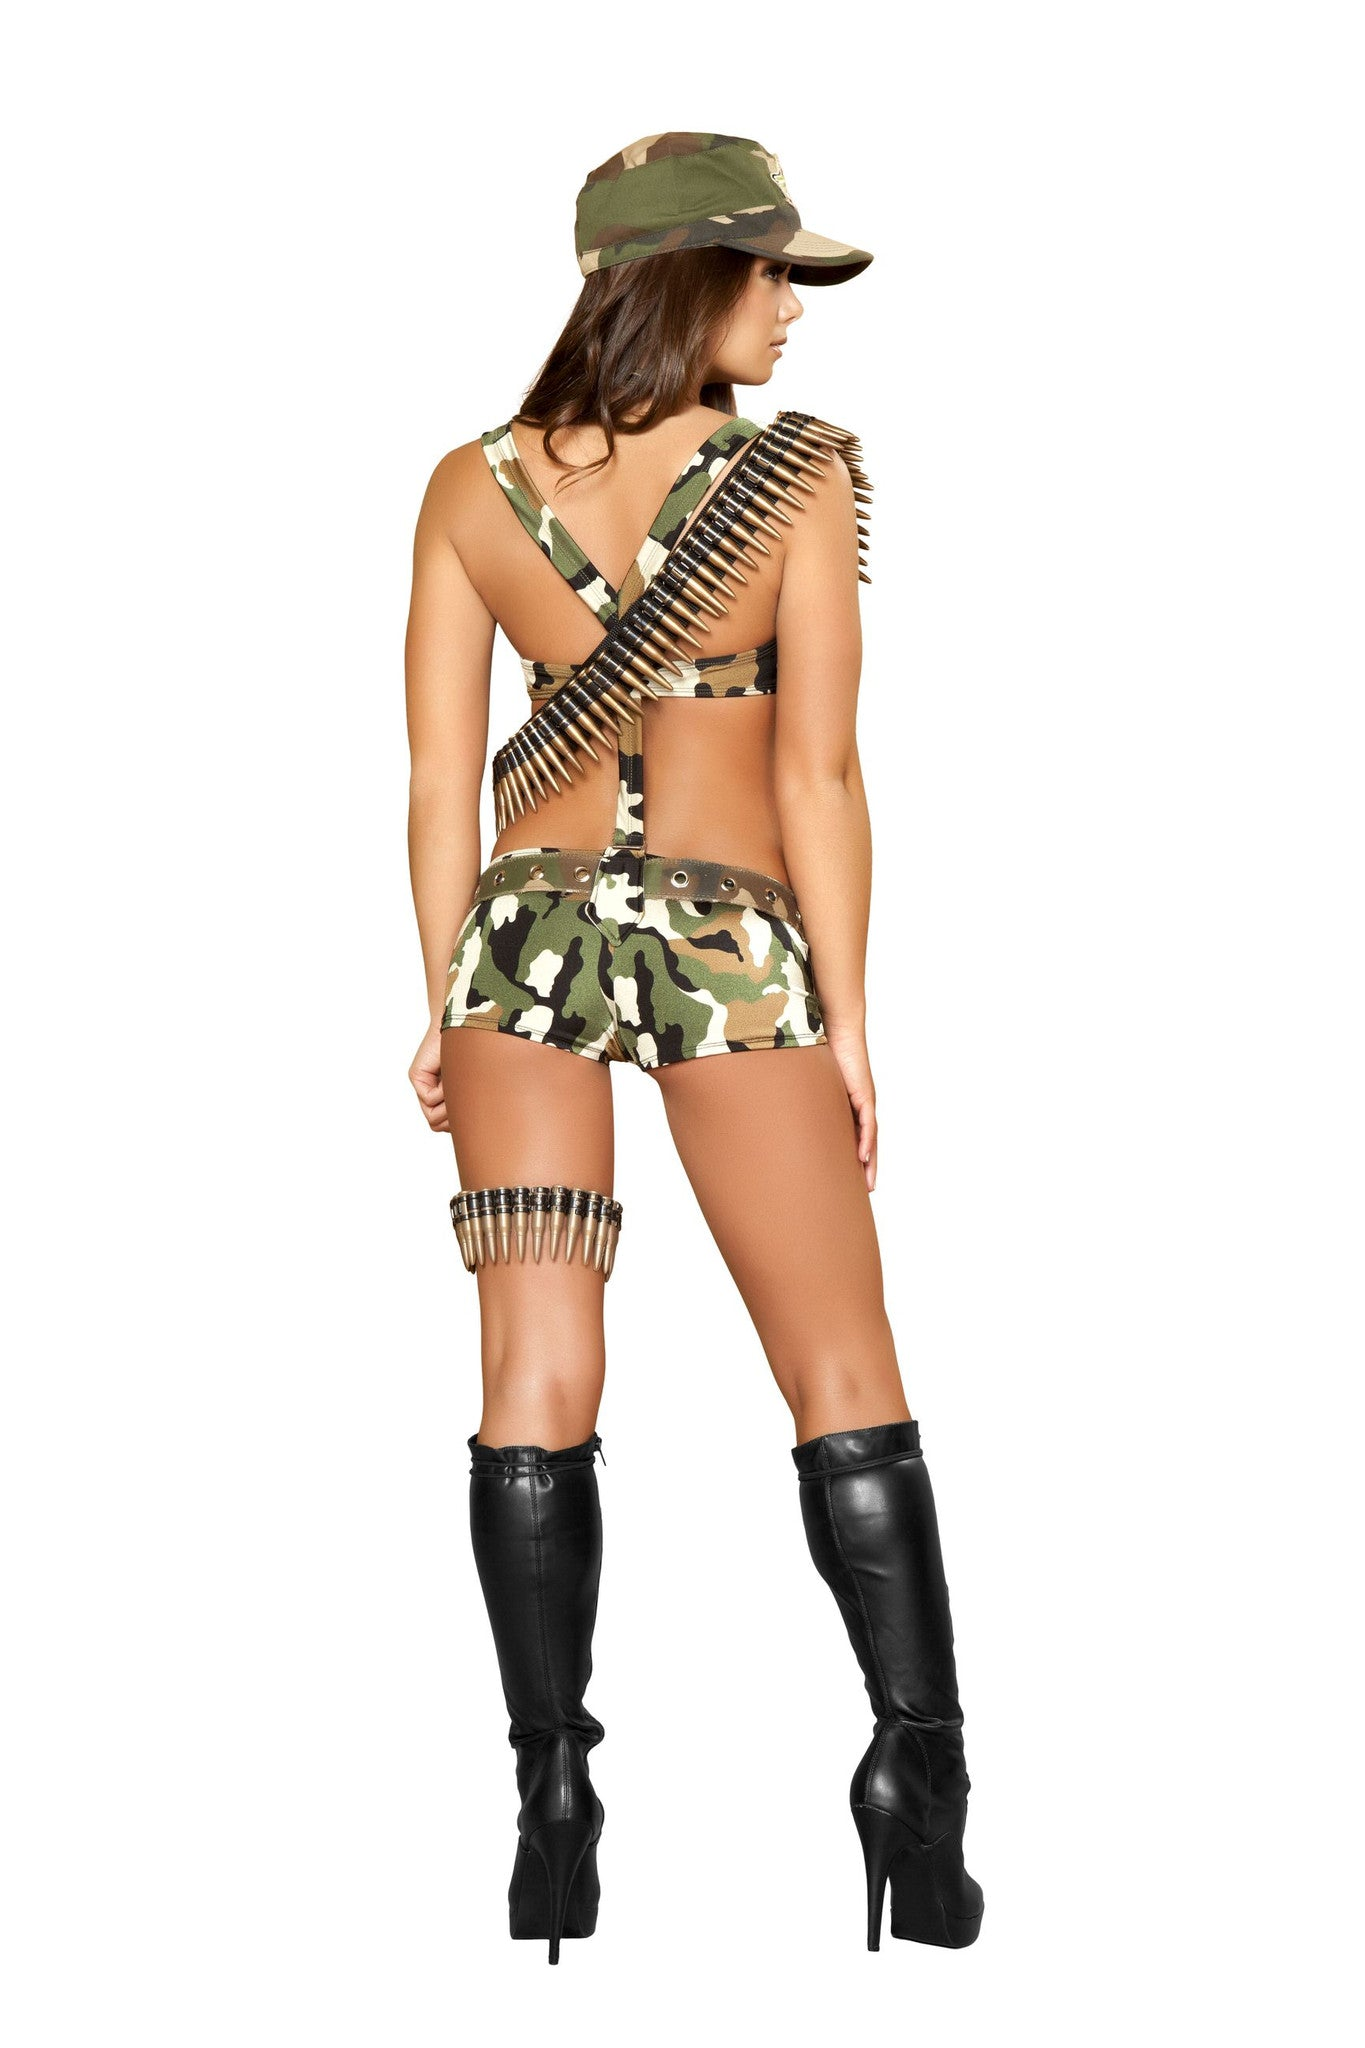 4391 - Six Piece Seductive Soldier ${description} | Roma Costume and Roma Confidential wholesale manufacturer of Women Apparel bulk world wide wholesale and world wide drop ship services for Adult Halloween Costumes, Sexy and Elegant Lingerie, Rave Clothing, Club wear, and Christmas Costumes. Costumes,2013 Costumes, Roma Costume, Inc., Roma Costume, Roma Confidential, Wholesale clothing, drop ship, drop ship service, Wholesale Lingerie, Wholesale Adult Halloween Costumes, Rave Clothing, EDM Clothing, Festival Wear, Christmas Costumes, Clubwear, Club wear.